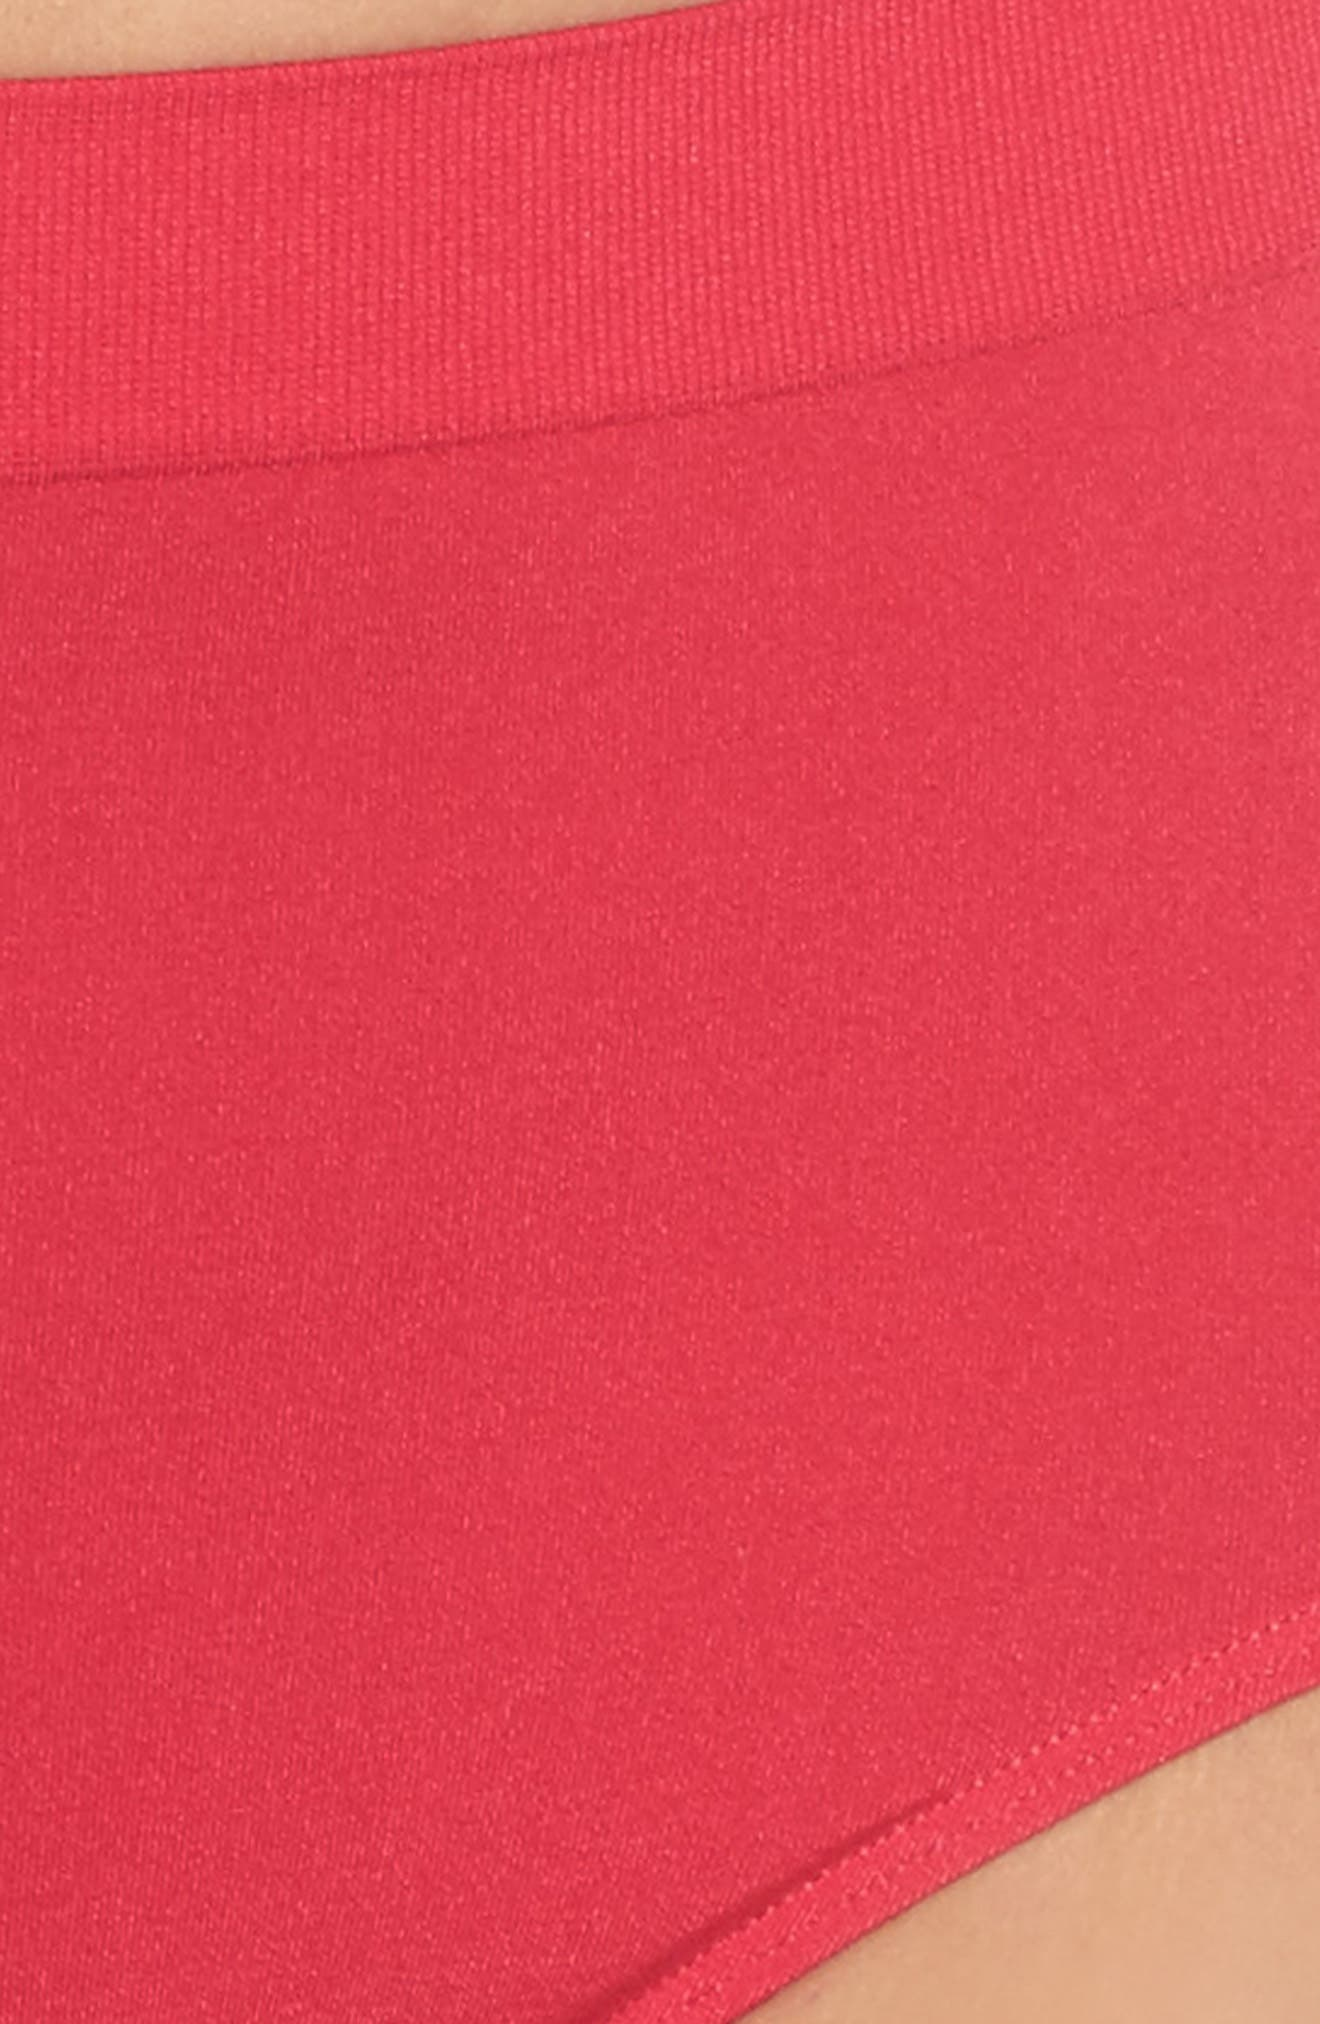 B Smooth Briefs,                             Alternate thumbnail 199, color,